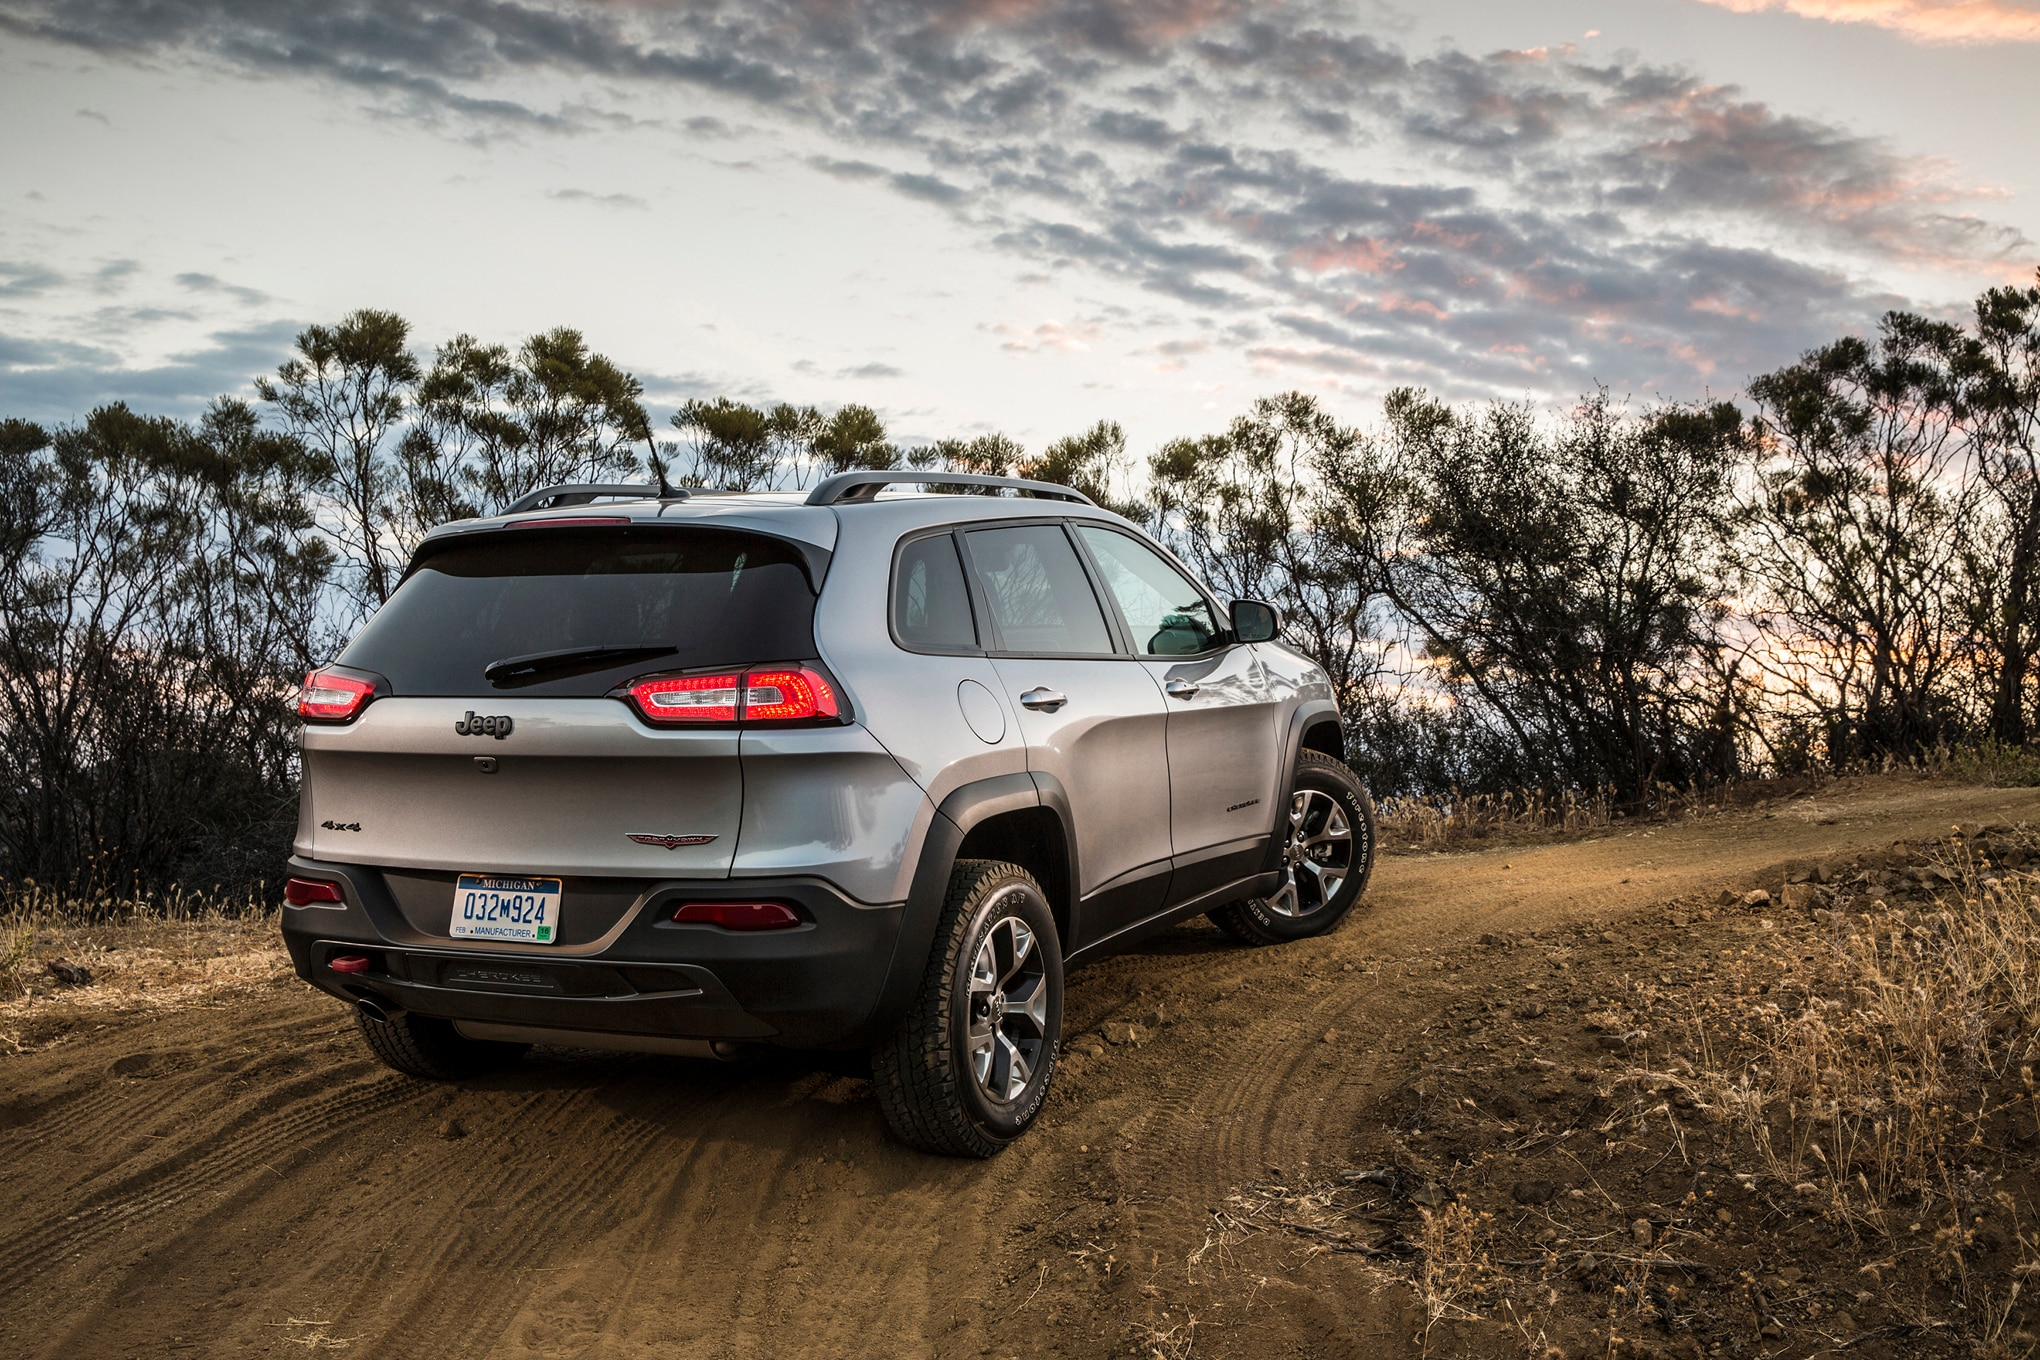 2015 jeep cherokee v-6 mpg ratings improve thanks to start-stop system